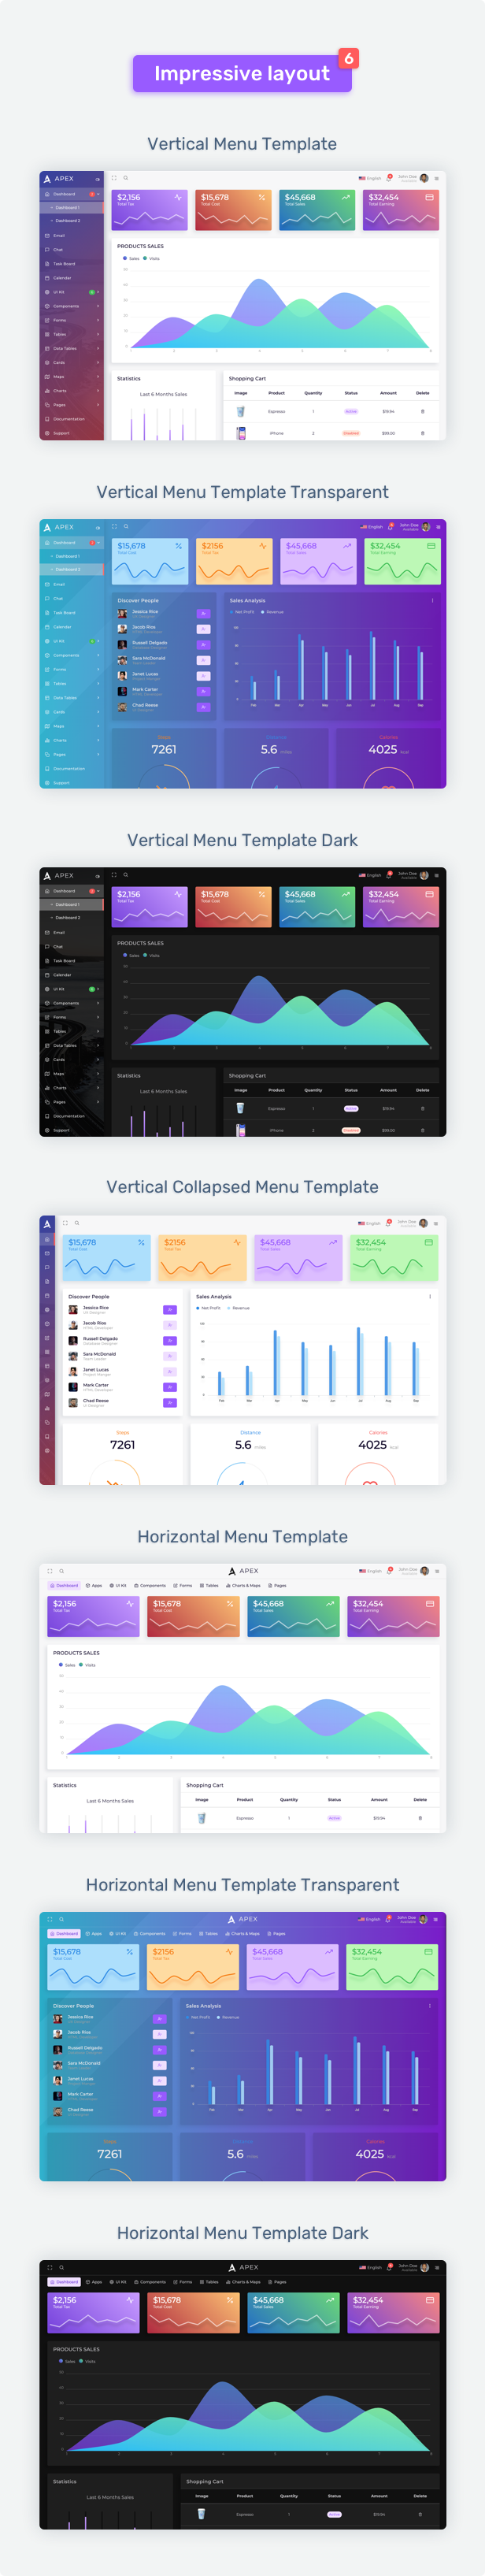 12 choose from impressive layout - Apex - Angular 9+ & Bootstrap 4 HTML Admin Template